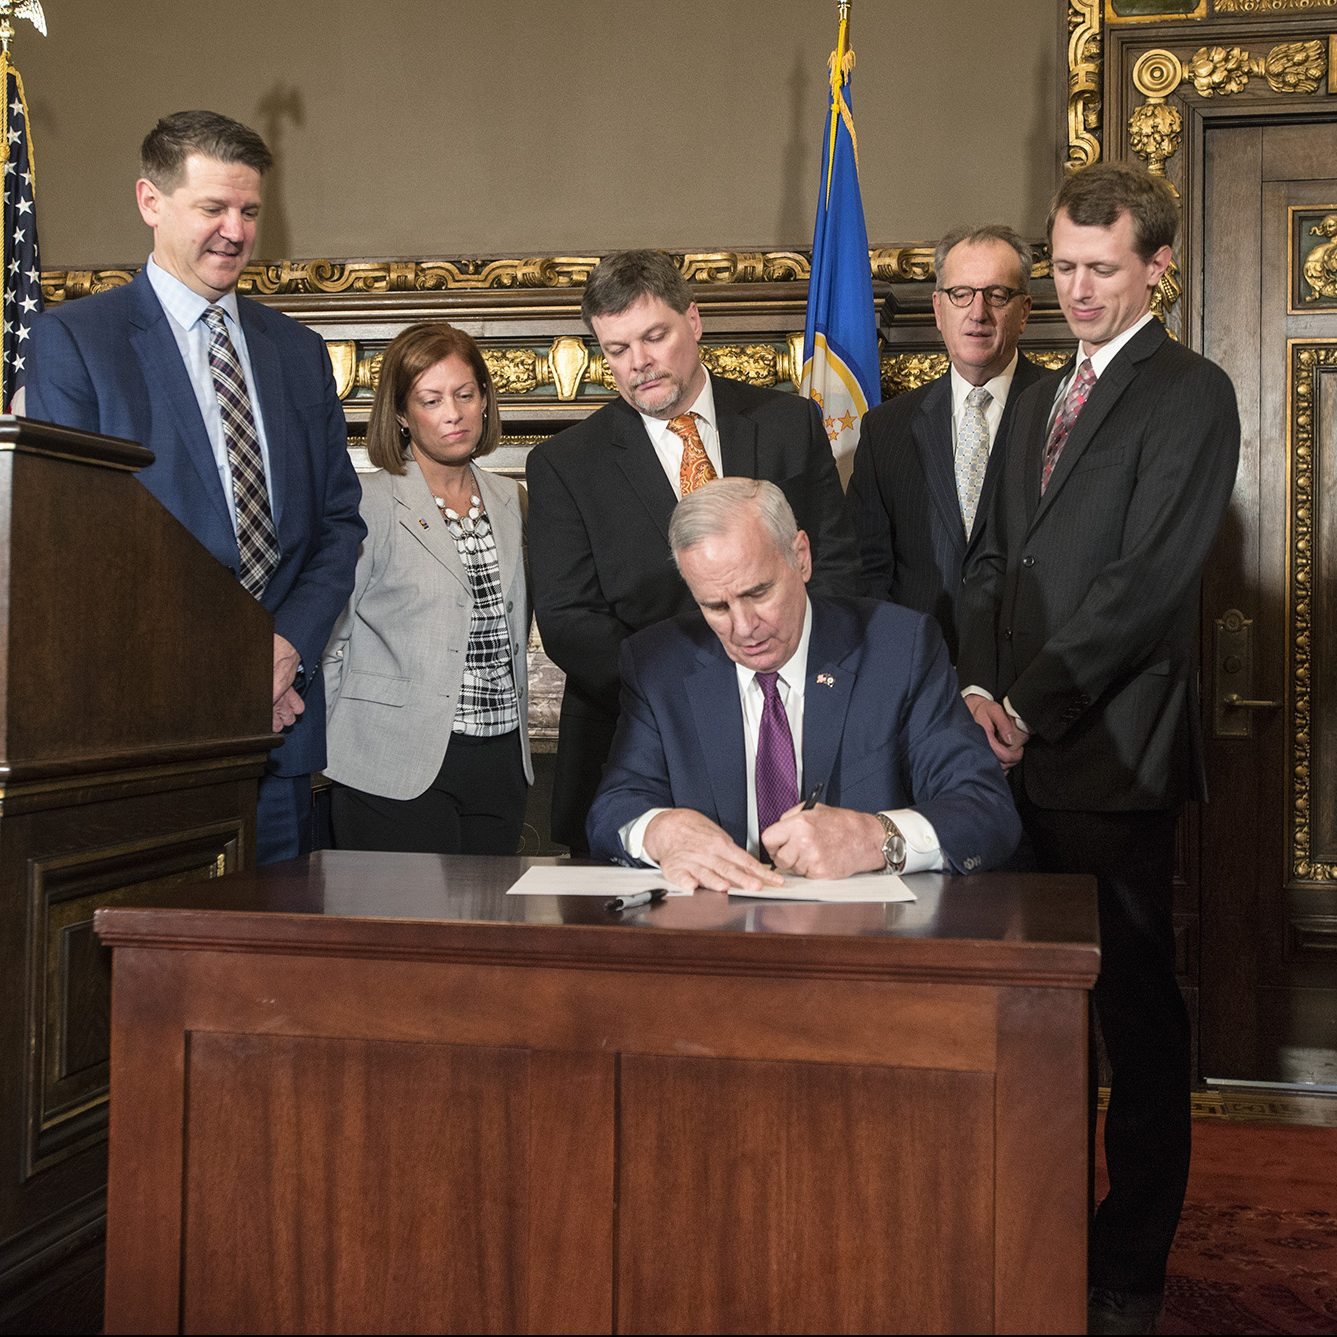 Mathews legislation for Sherco plant signed into law